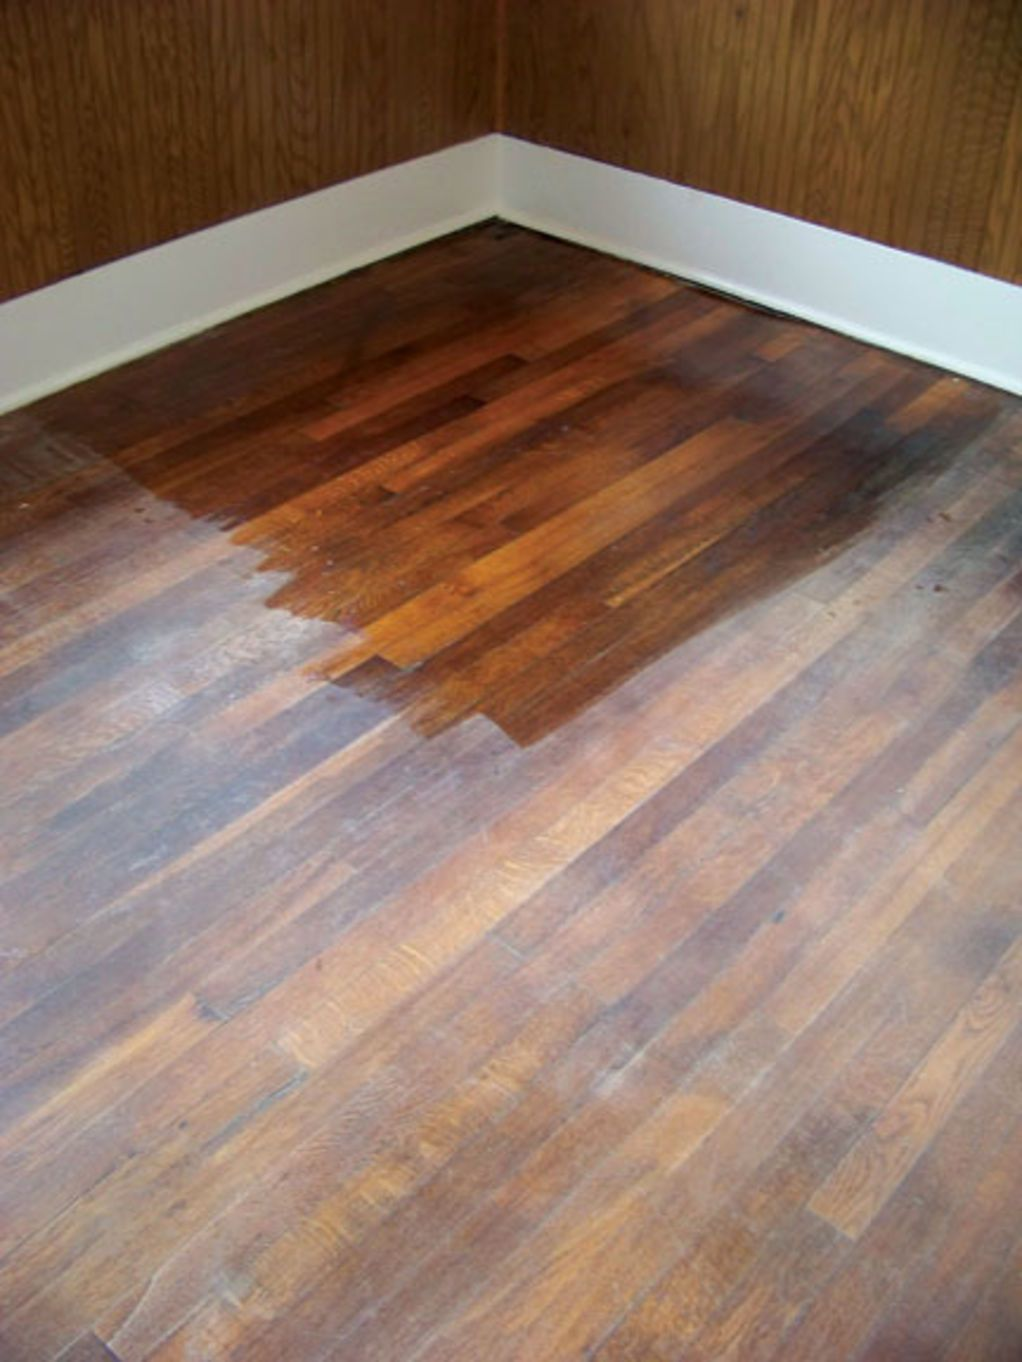 Steps To LikeNew Floors Old House Restoration Products - Reseal wood floor